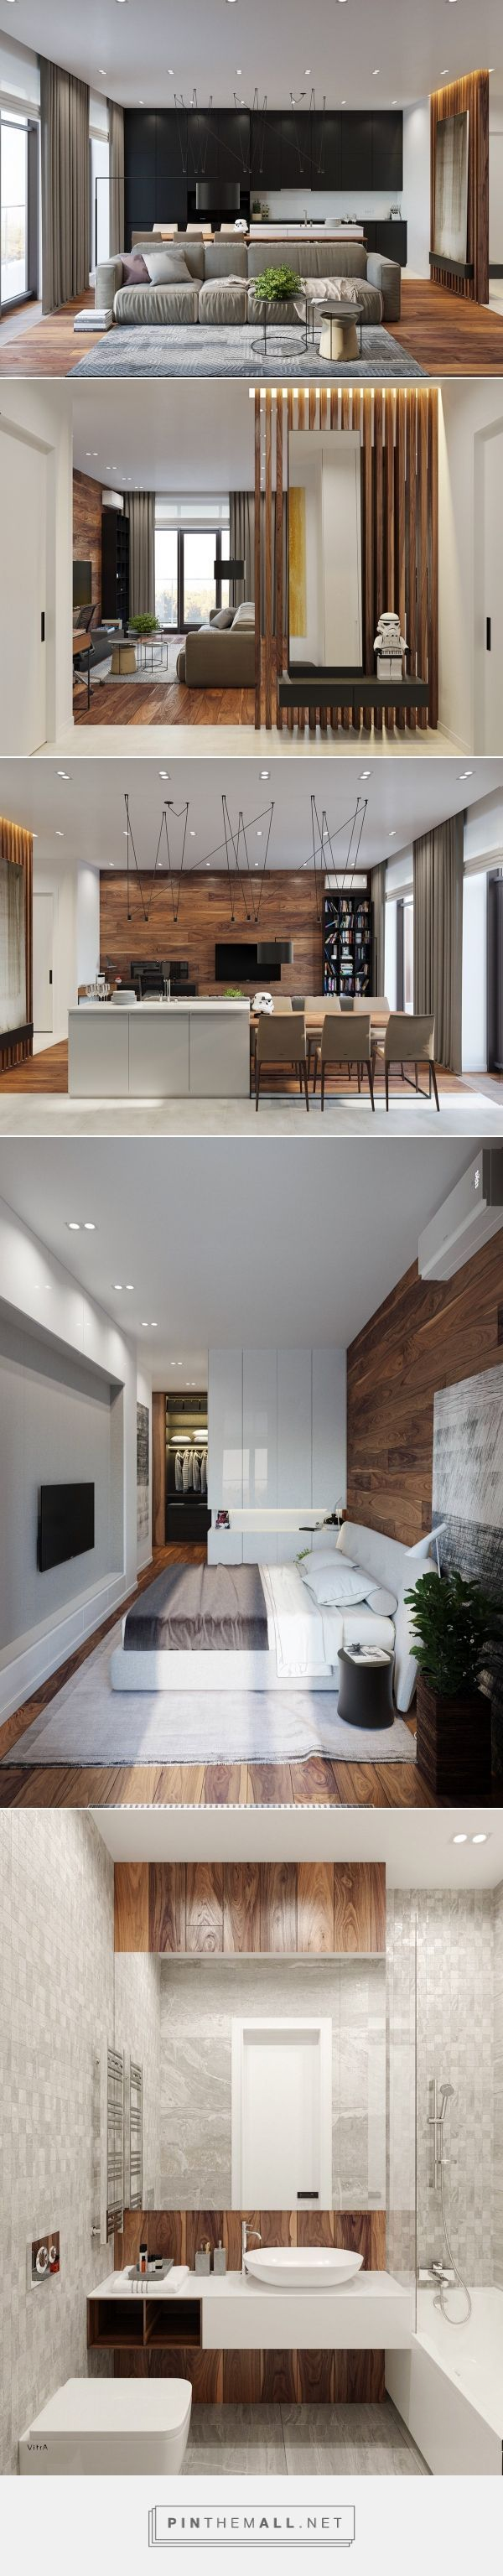 Madera | Living Room CC | Pinterest | Apartment Interior Design, Interior  Design Inspiration And Design Inspiration